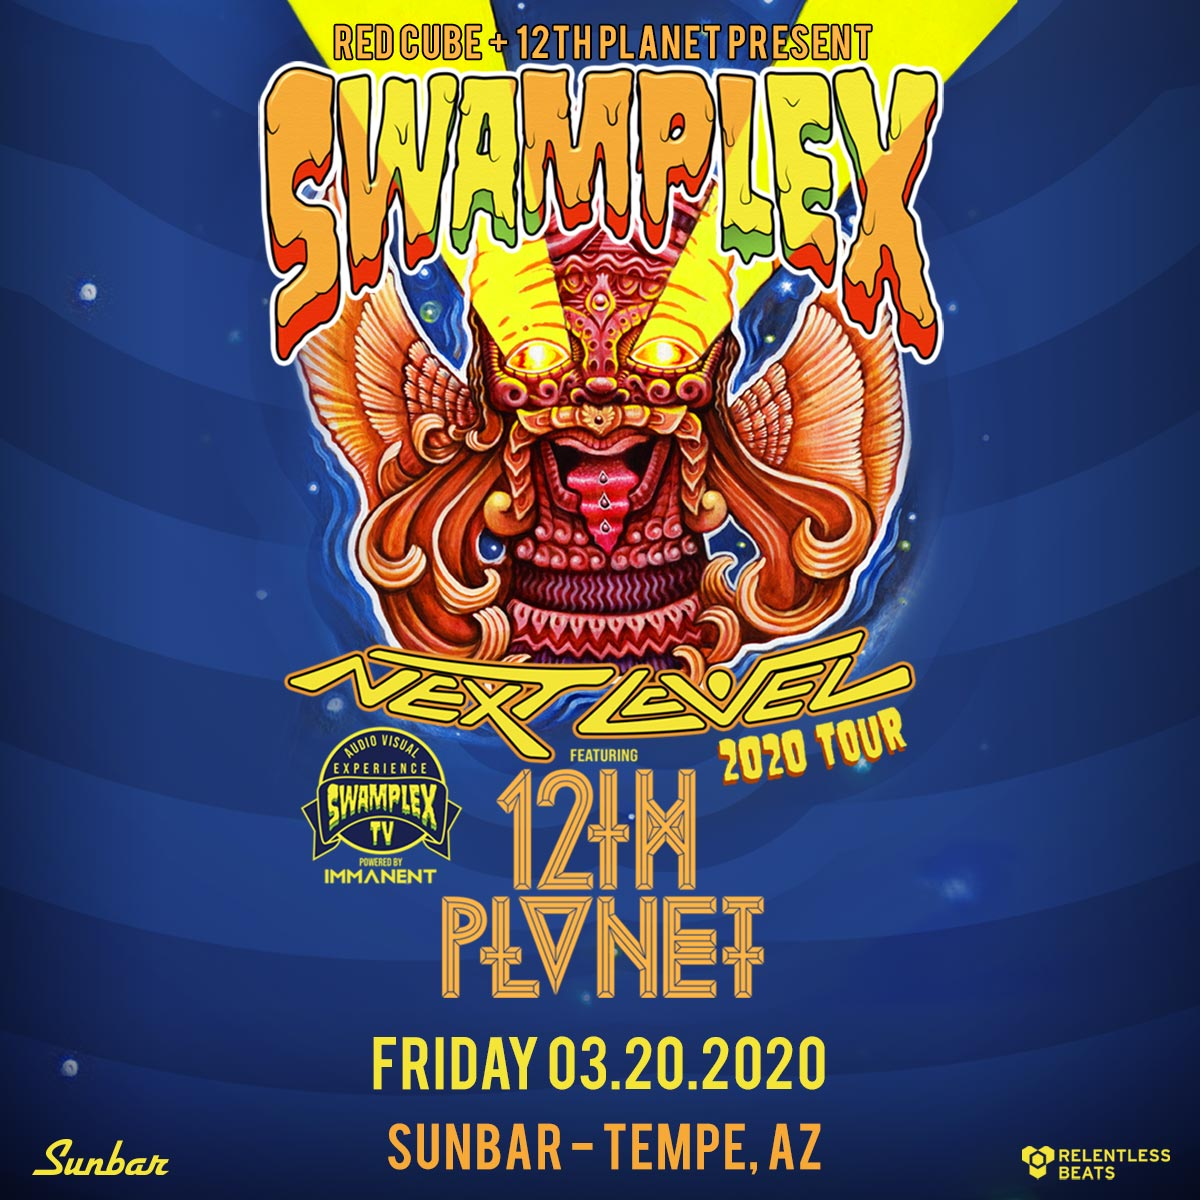 Flyer for 12th Planet